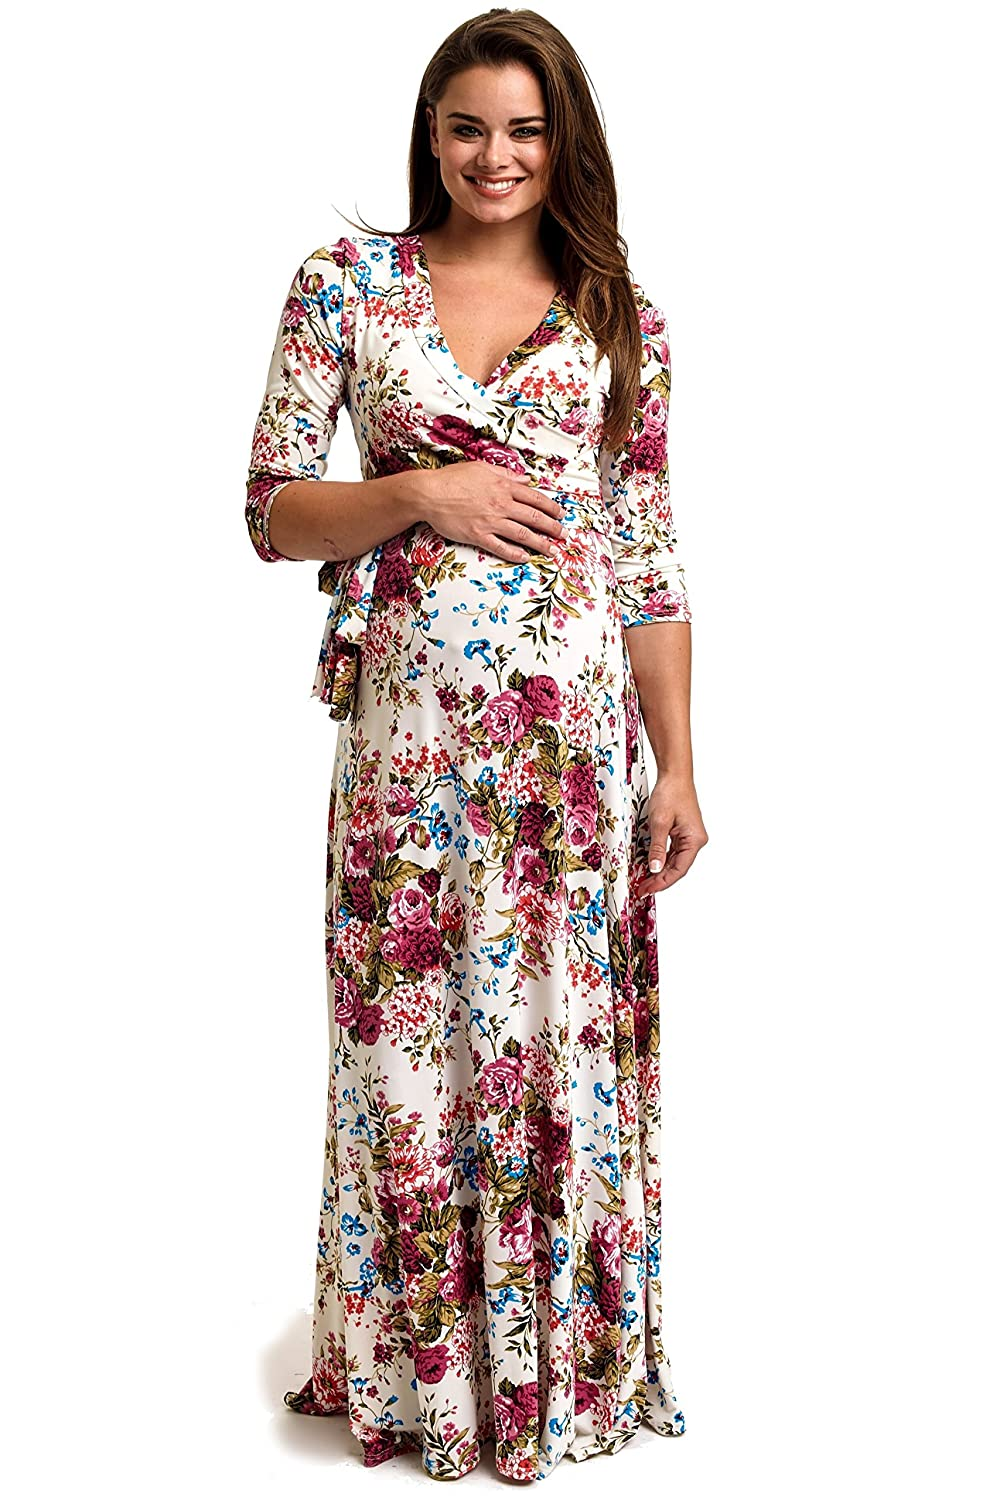 2bfd4e71268 Pinkblush Maternity Maxi Dresses - Data Dynamic AG